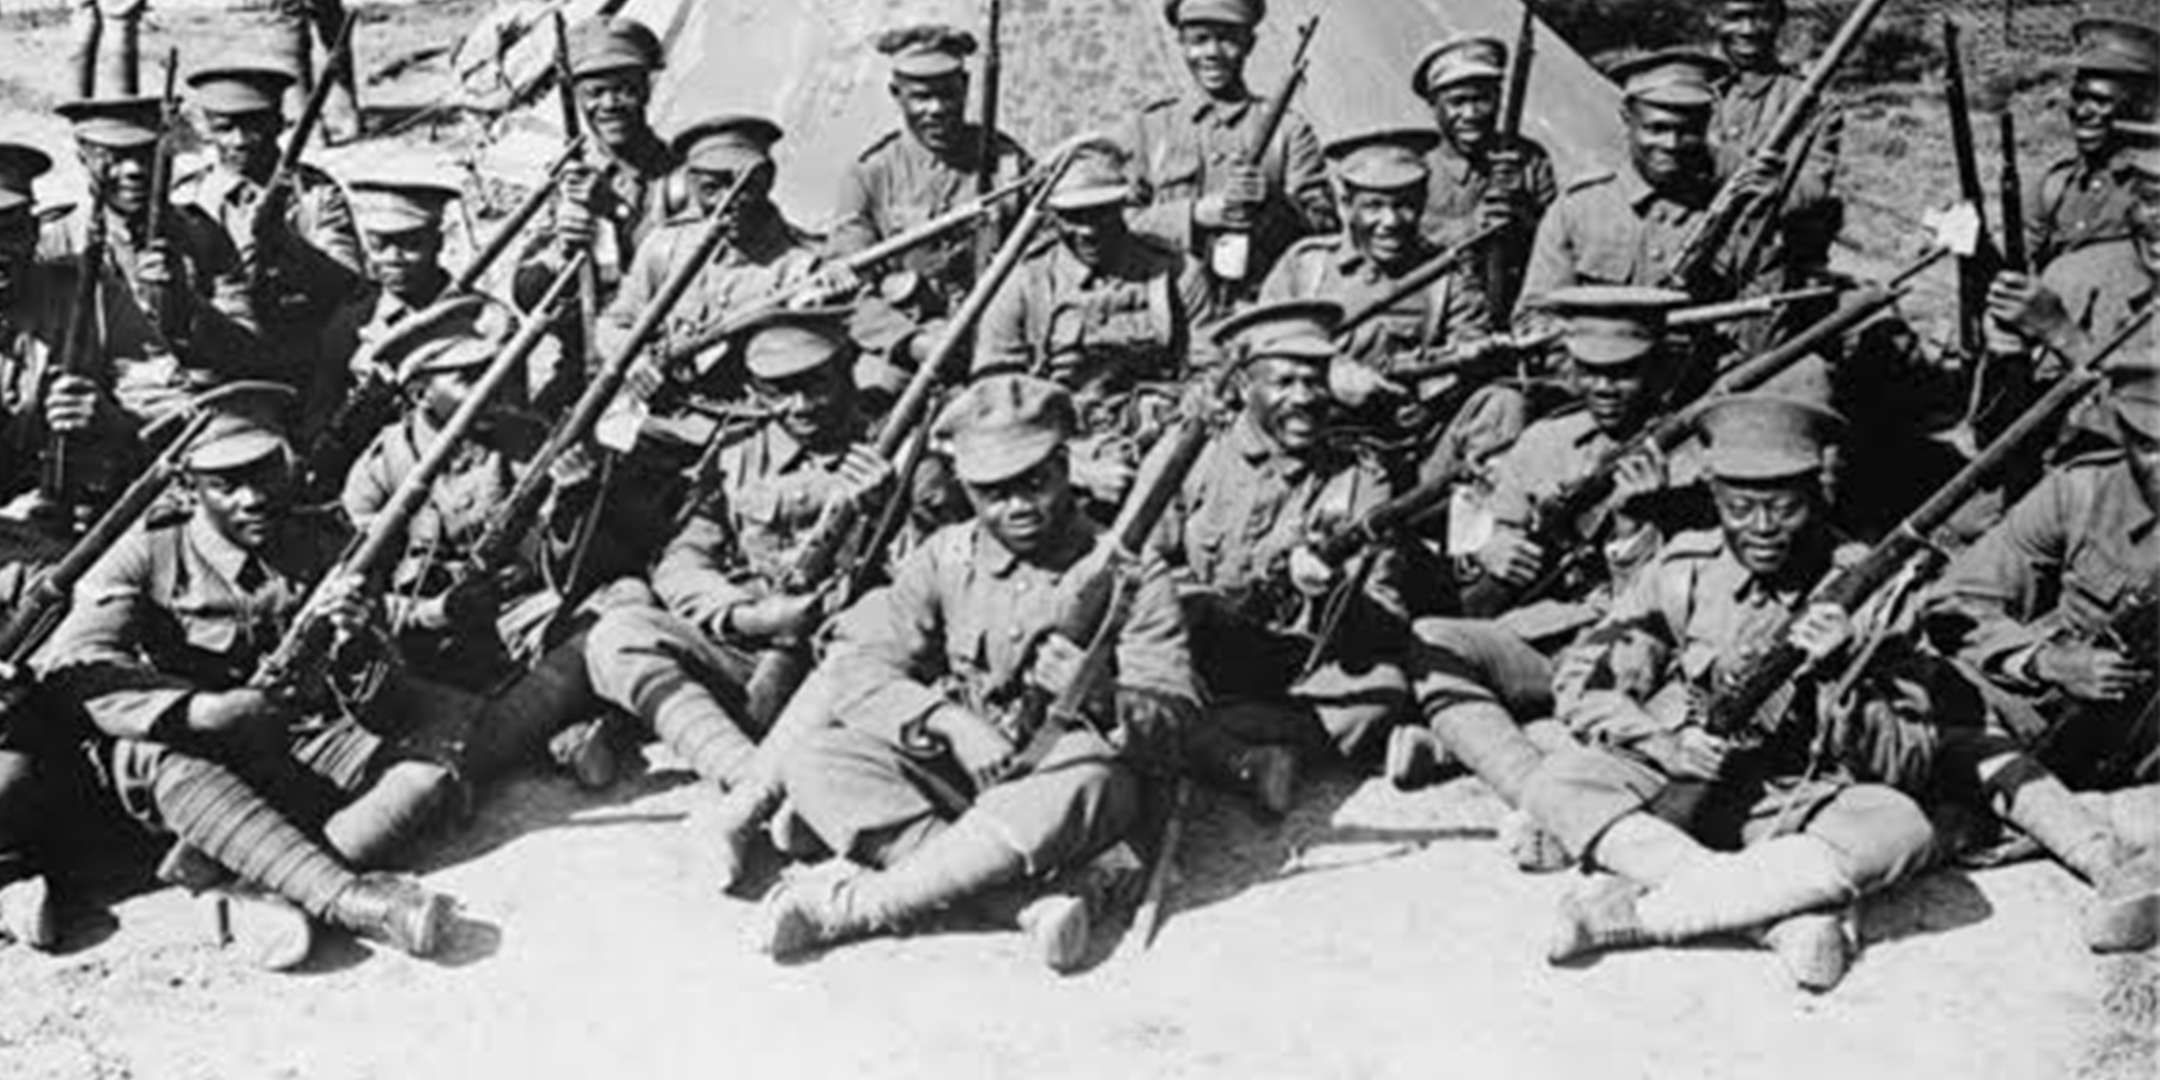 British West Indian Regiment in Egypt WW1. Credit: The Imperial War Museum.